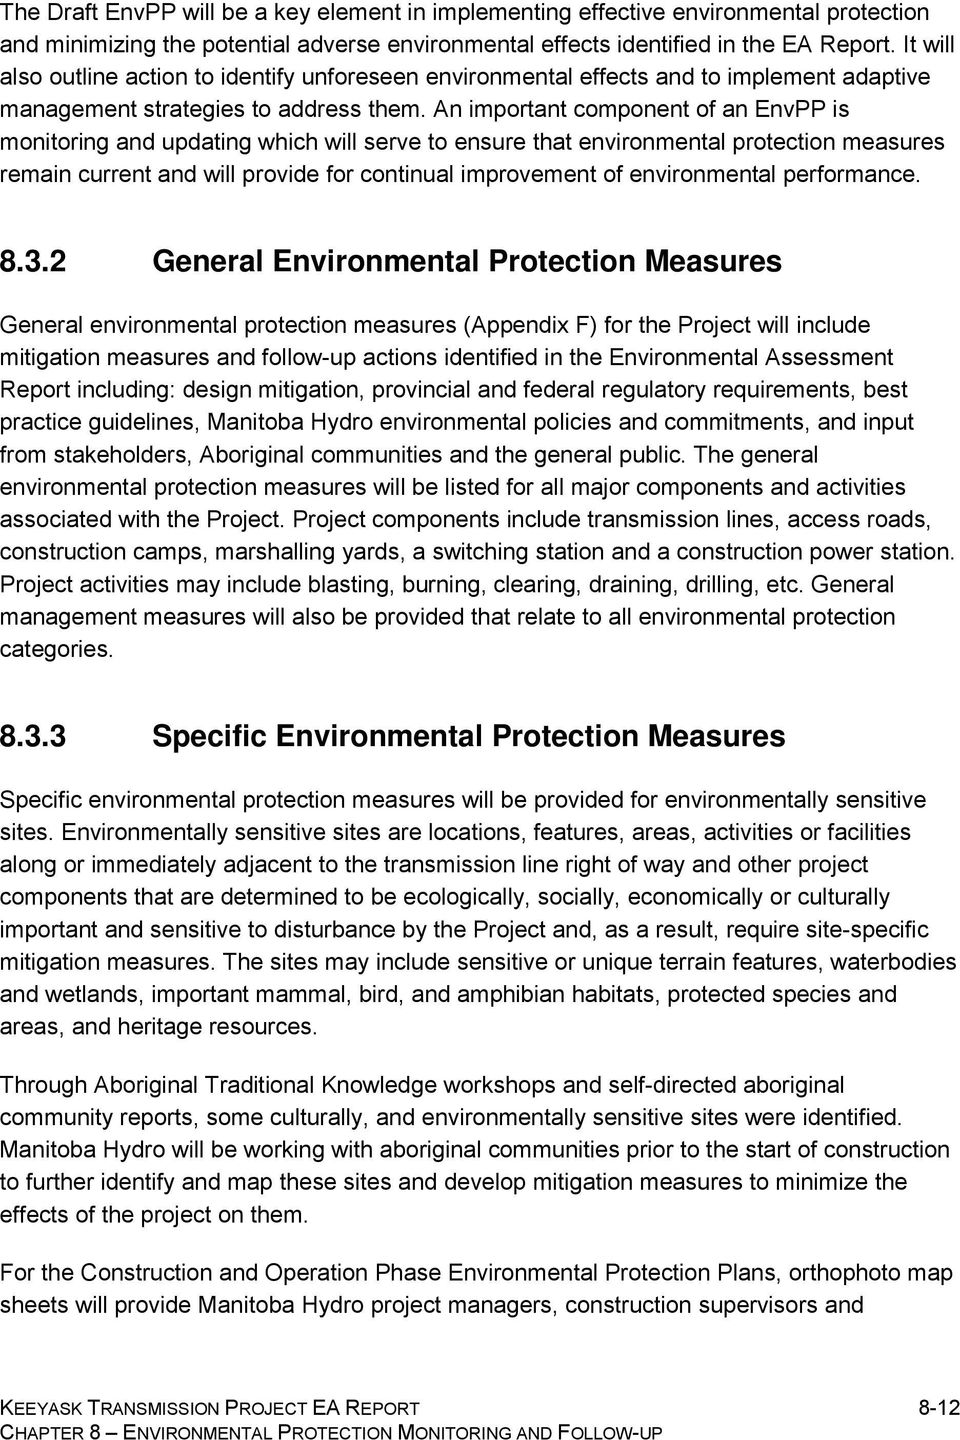 An important component of an EnvPP is monitoring and updating which will serve to ensure that environmental protection measures remain current and will provide for continual improvement of